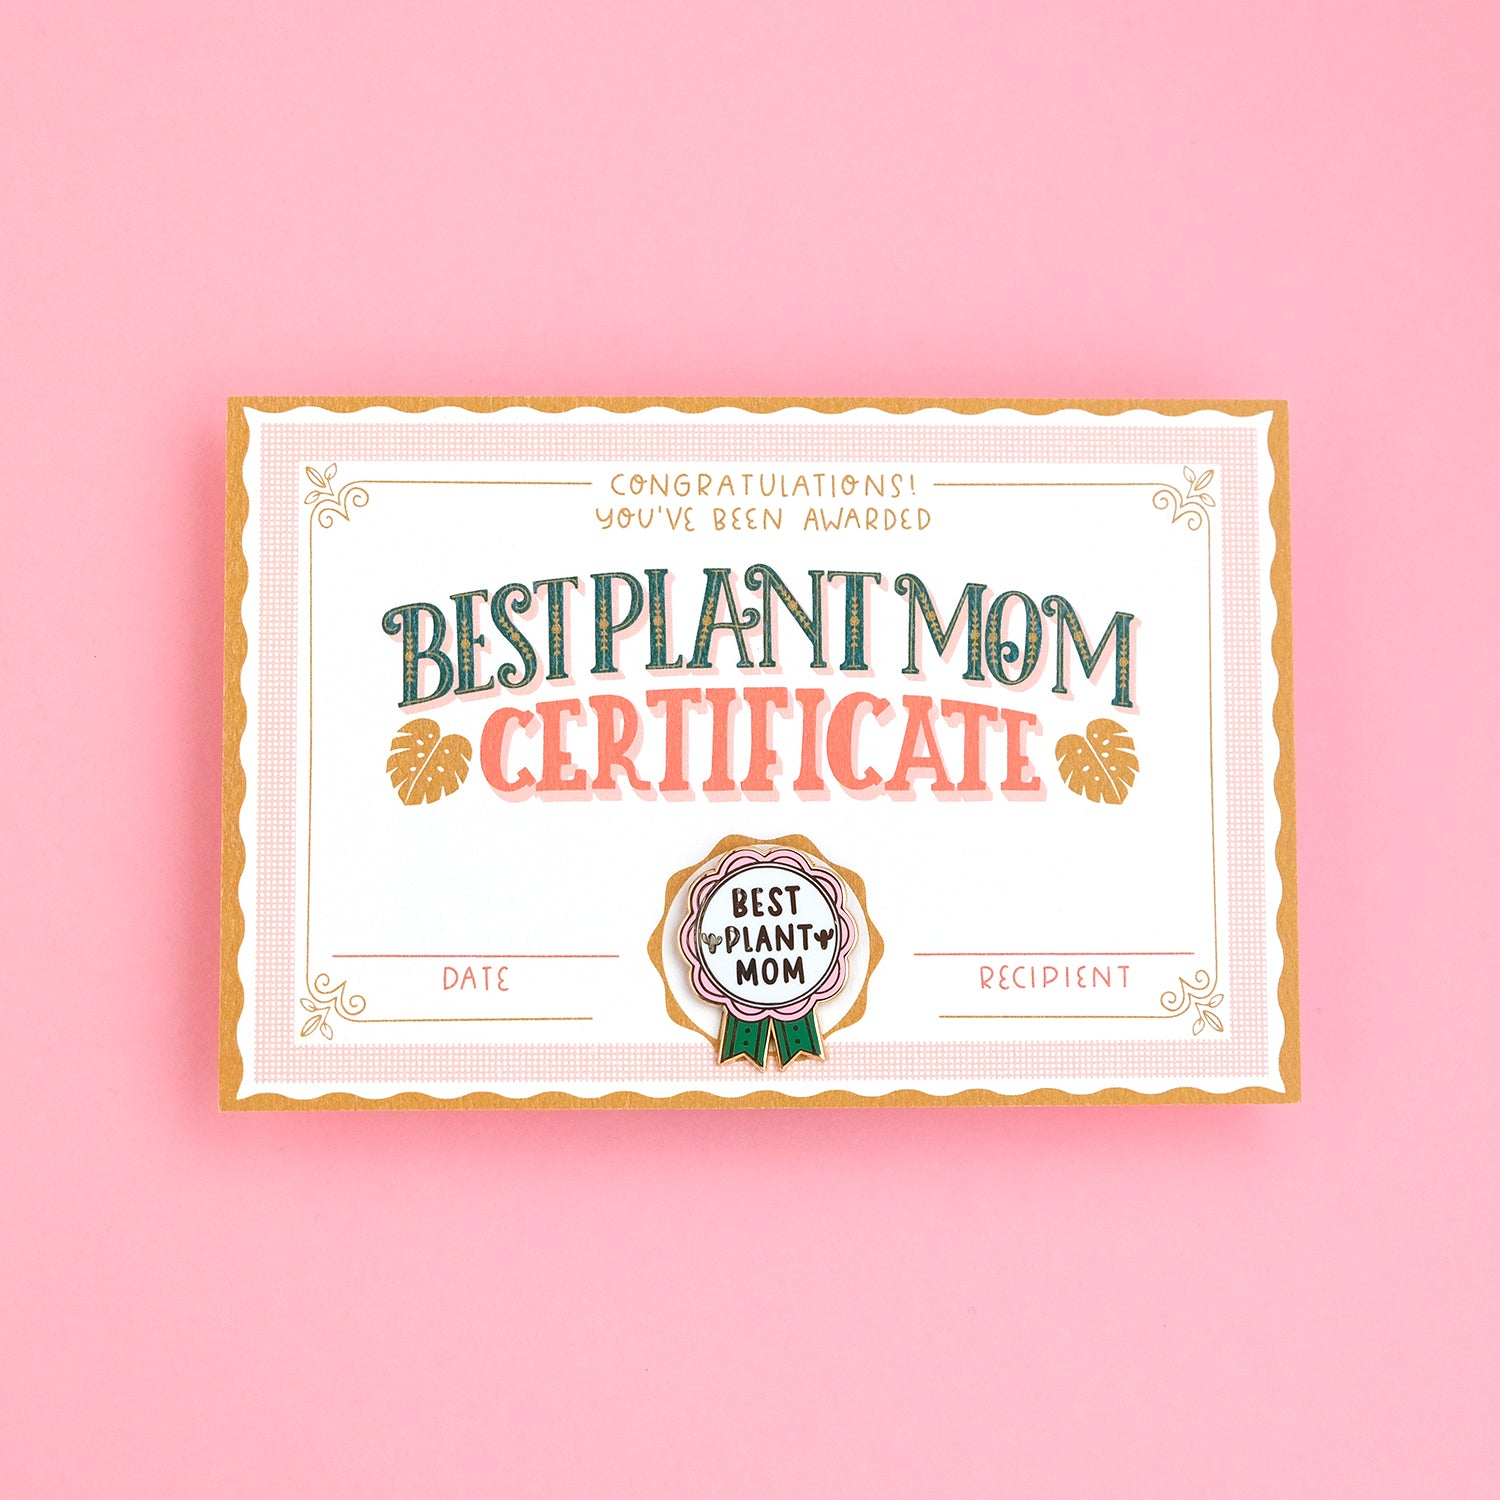 BEST PLANT MOM CERTIFICATE + ENAMEL PIN